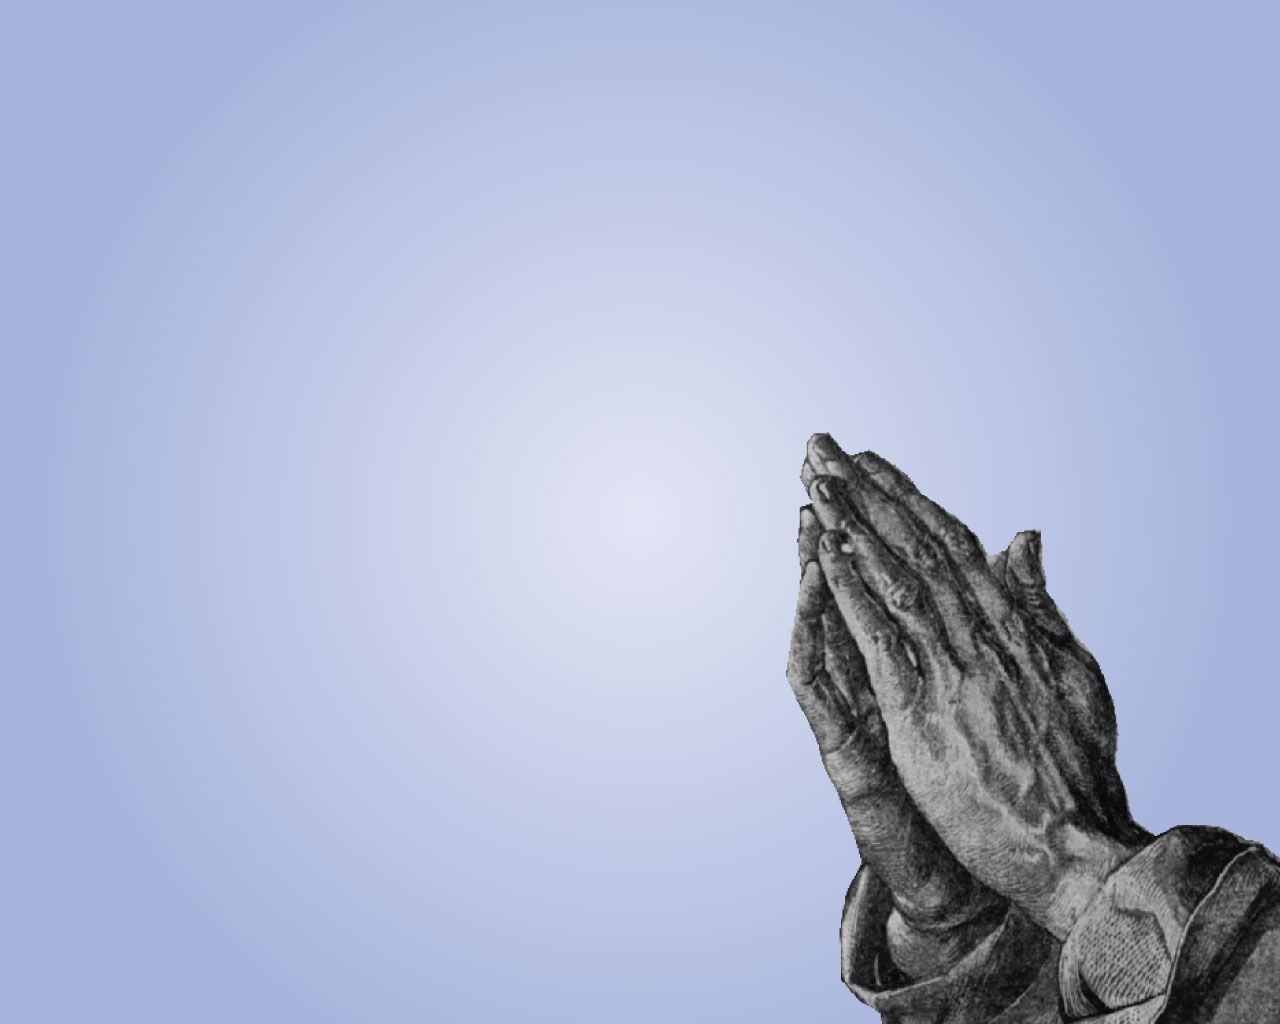 Praying Hands wallpaper – Find Out What the latest photo is!